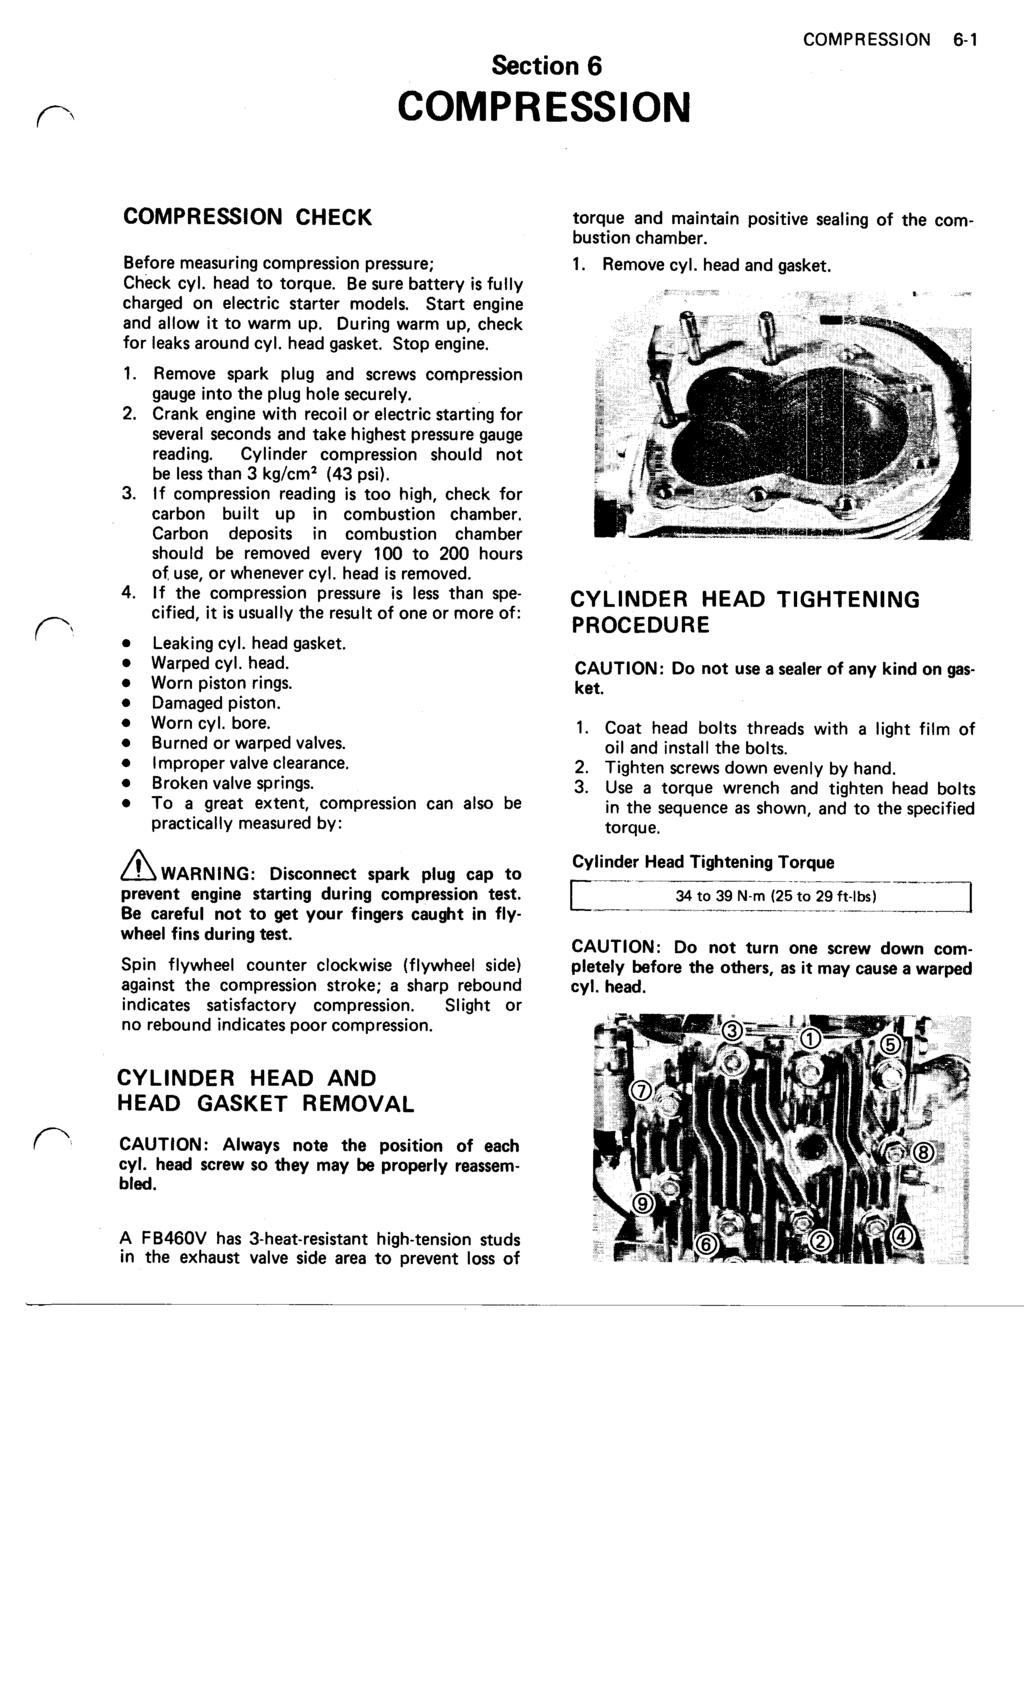 KAWASAKI FB460V ENGINE MANUAL - PDF on radio harness, pony harness, battery harness, amp bypass harness, engine harness, maxi-seal harness, suspension harness, nakamichi harness, oxygen sensor extension harness, obd0 to obd1 conversion harness, electrical harness, dog harness, fall protection harness, cable harness, safety harness, alpine stereo harness, pet harness,